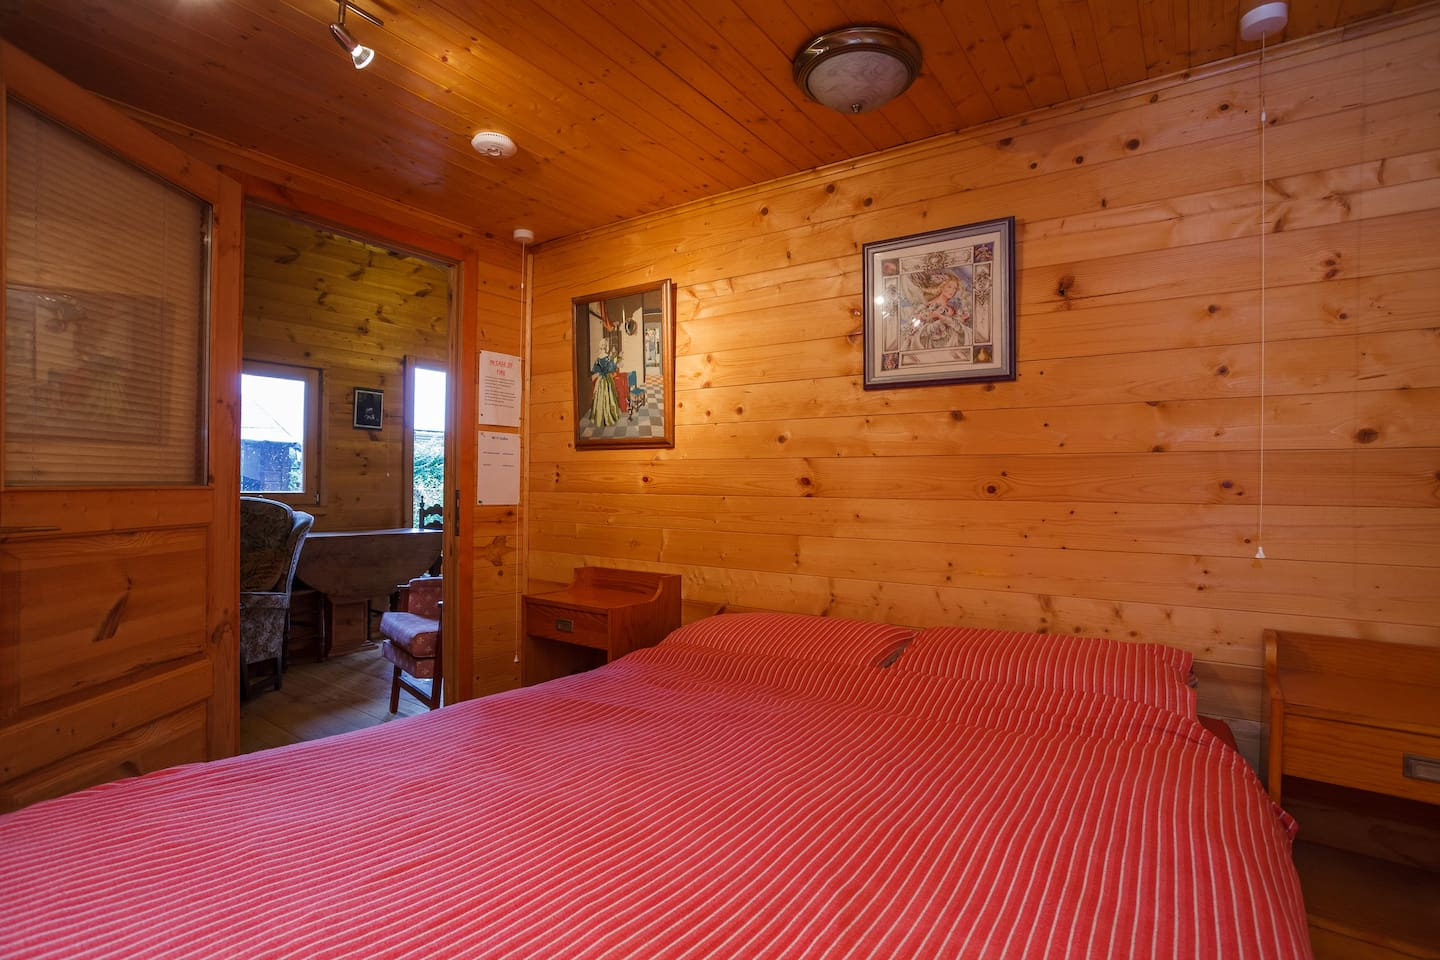 Double bed and Bedroom